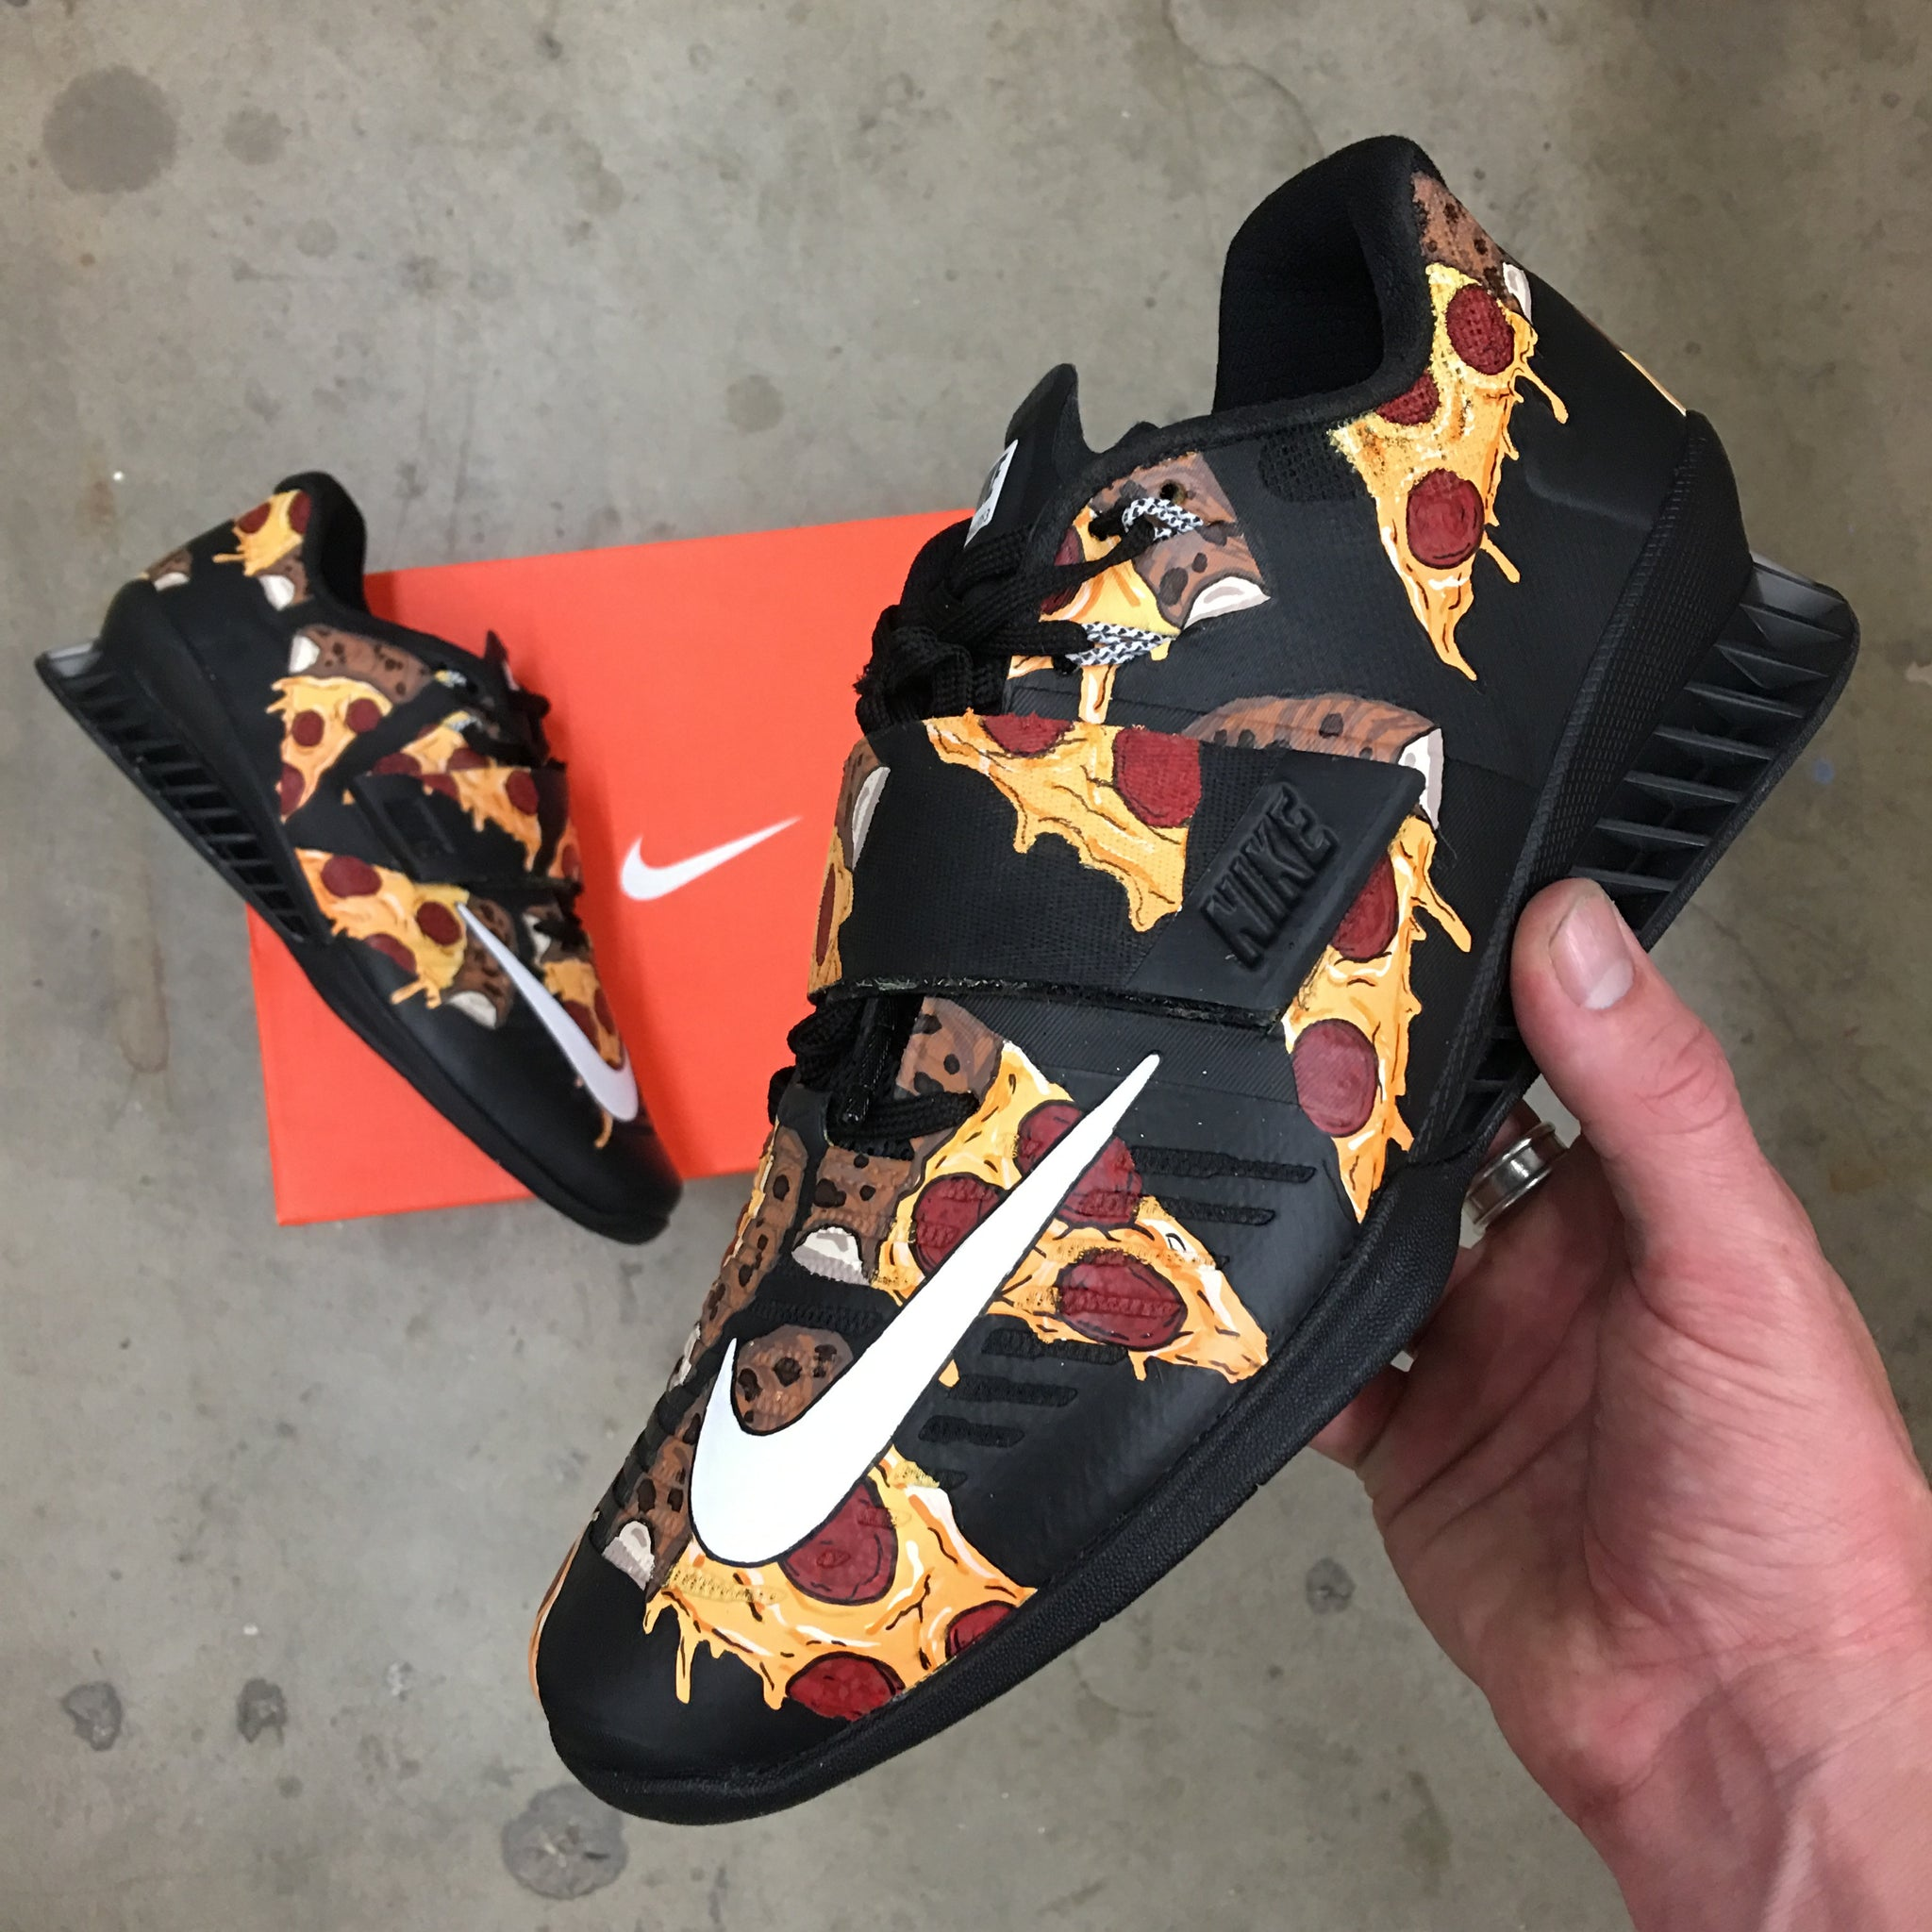 Cúal Adolescencia Parlamento  Pizza Themed Nike Romaleos 3 Weightlifting Shoes- Custom Painted Nike – B  Street Shoes